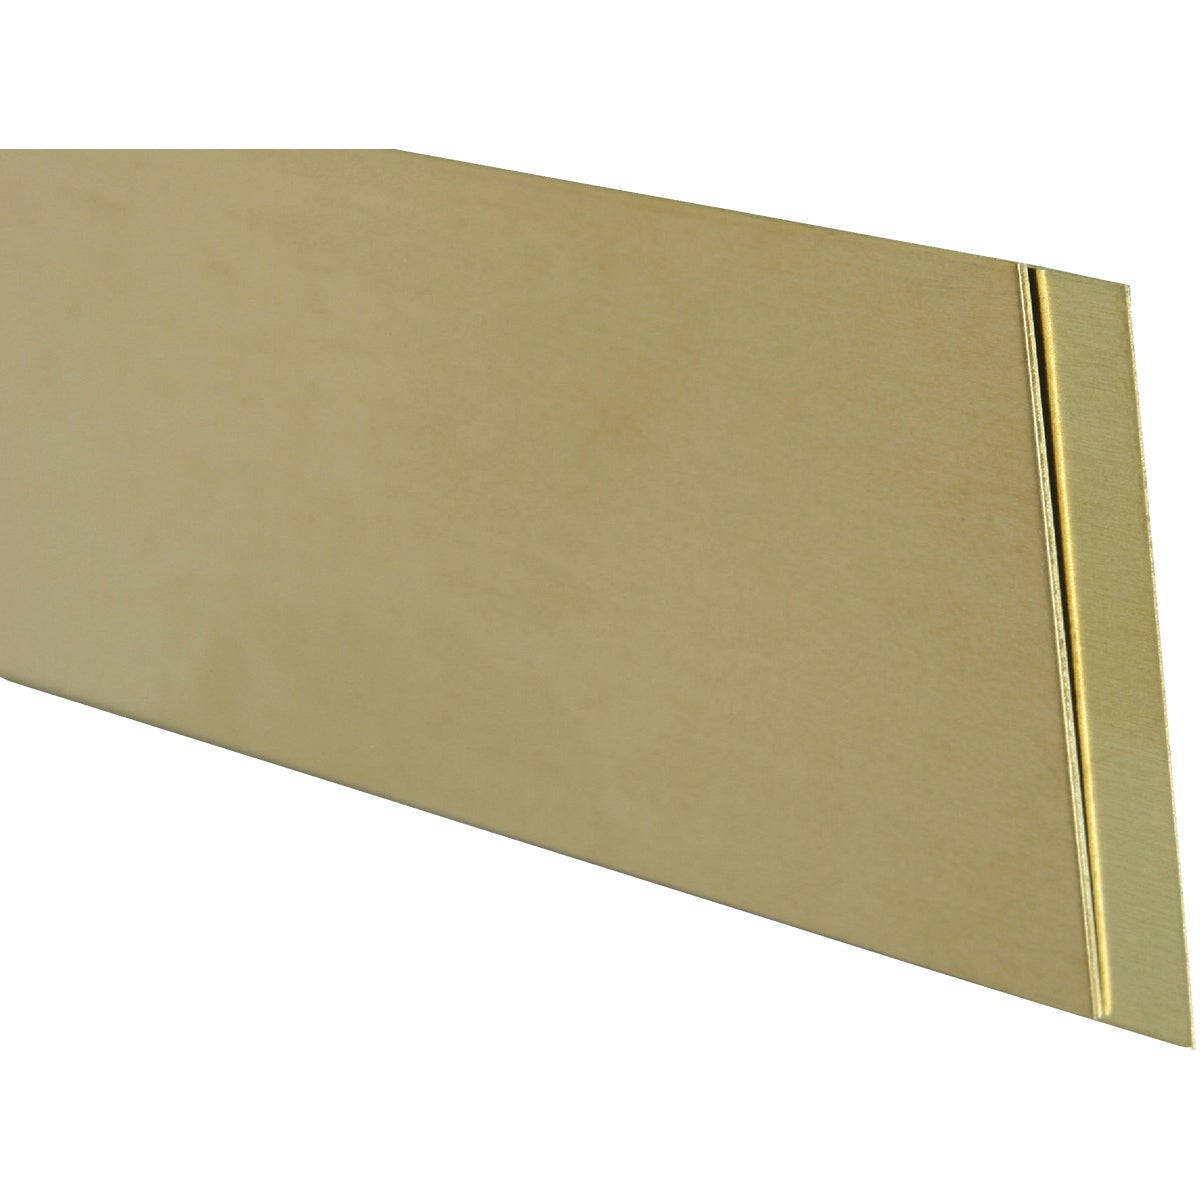 .032X1X12 BRASS STRIP - 8242 by K&s Precision Metals